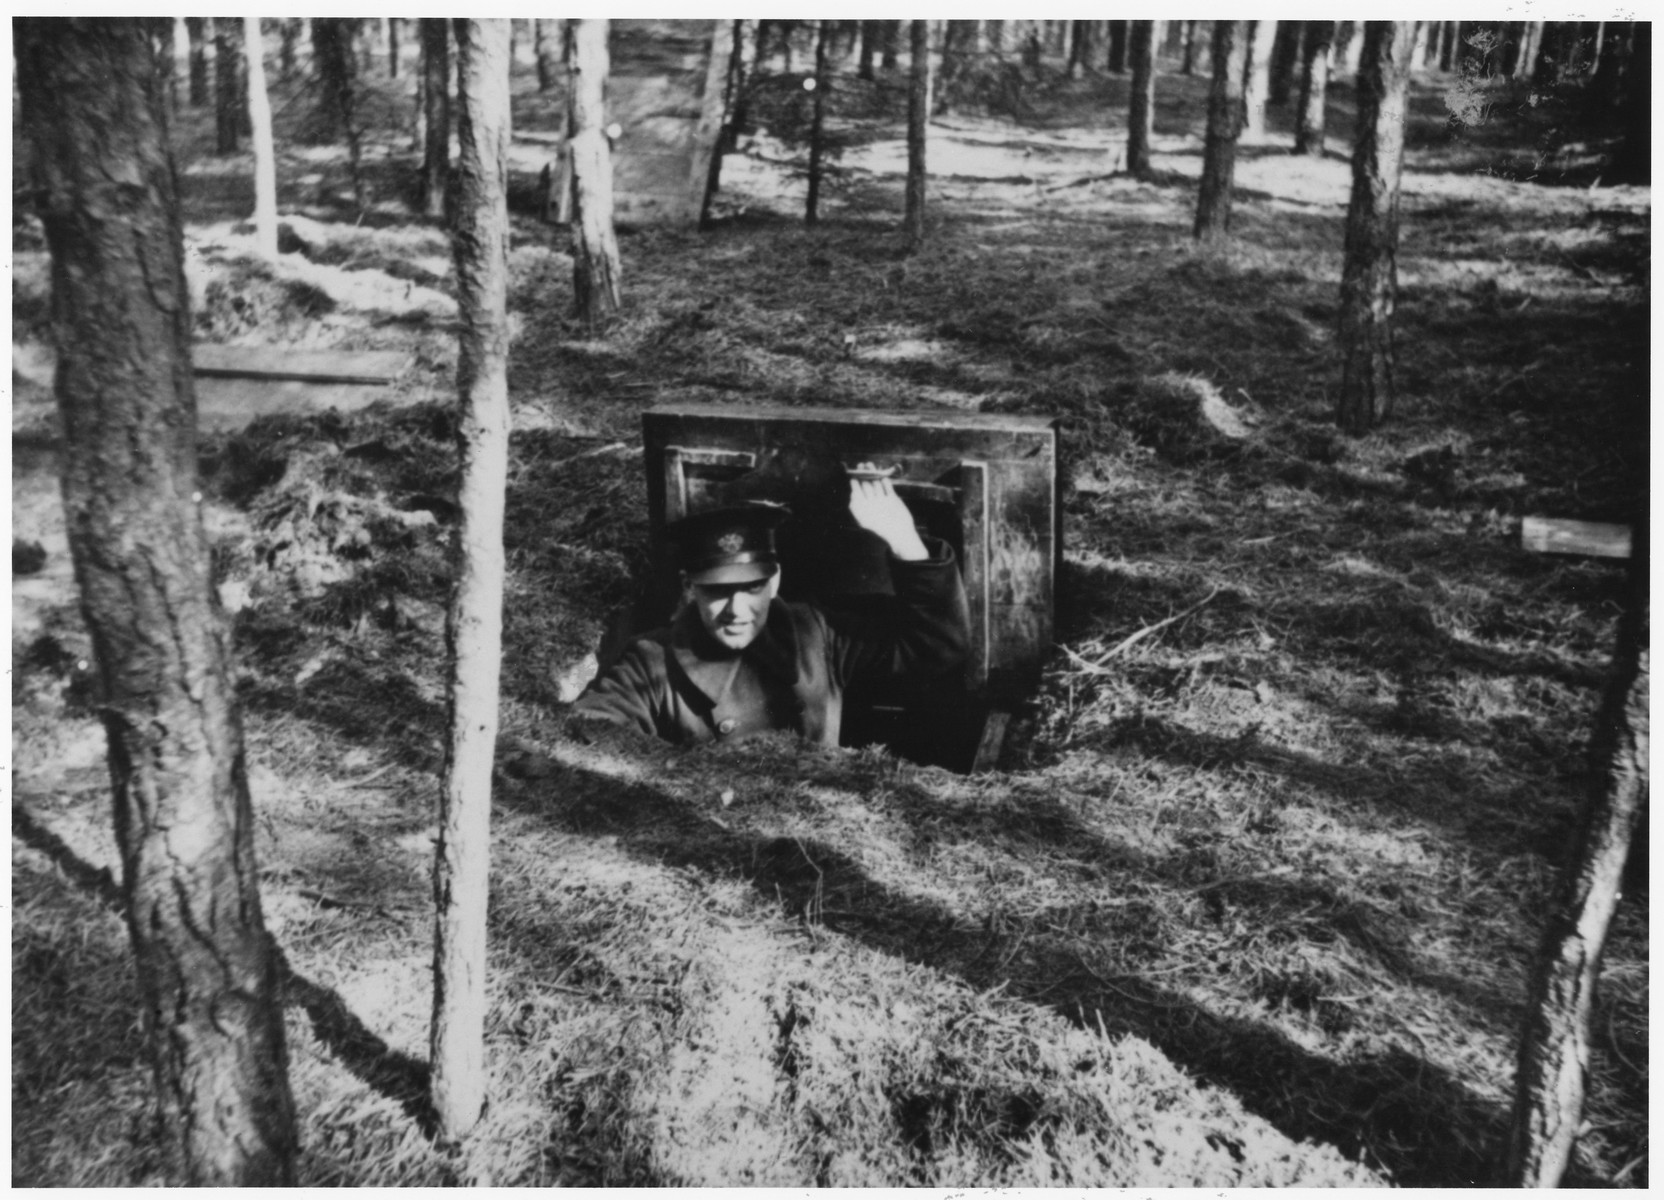 A Dutch policeman looks out the hatch of a small bunker that served as a hiding place for Dutch Jews in the Eibergen region in 1942-1943.  The bunker was discovered by the Germans one day before this photograph was taken.  The bunker was, in actuality, a prefabricated hut that was ordered by two Jewish brothers, Abraham and Herman Maas from Eibergen.  It was delivered in sections to a site in the Hoones Forest outside Eibergen.  The Maas brothers got permission from the manager of the privately-owned forest to build a subterranean hiding place for themselves.  Two sympathetic non-Jews conveyed the materials, dug the hole and assembled the shelter, which had two rooms and a crude stove.  Initially, only the brothers hid there, but as times grew more desperate, 23 Jews were concealed in the bunker.  On March 27, 1943 a Dutch informer led Germans to the site.  All 23 were arrested and sent to Westerbork.  From there they were deported to Sobibor and killed.  After the war the informer was identified as E. Heijink and tried as a collaborator.  The photographer was a Dutchman, who was ordered to take pictures of the bunker the day after the Jews were captured.  He made an extra set of prints, which he kept secretly, and made available to resisters and surviving Jews after the liberation.  The policeman posed inside the bunker in order to better convey its size.